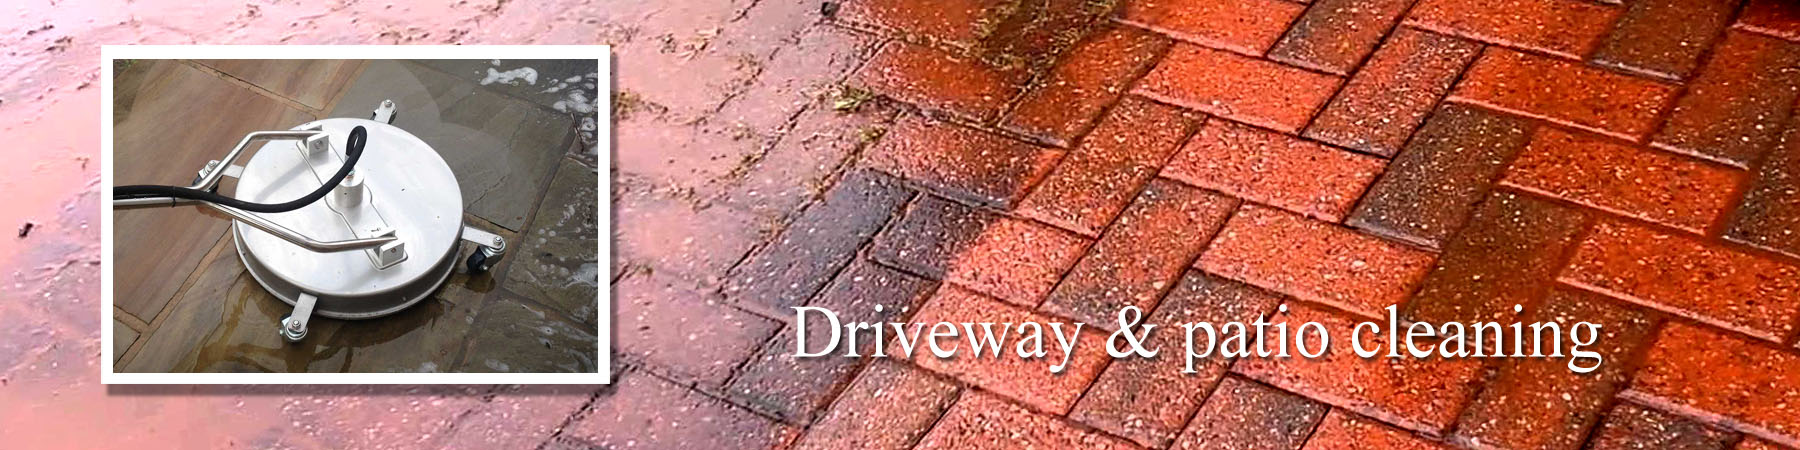 Driveway & Patio Cleaning Higham J R Cleaning